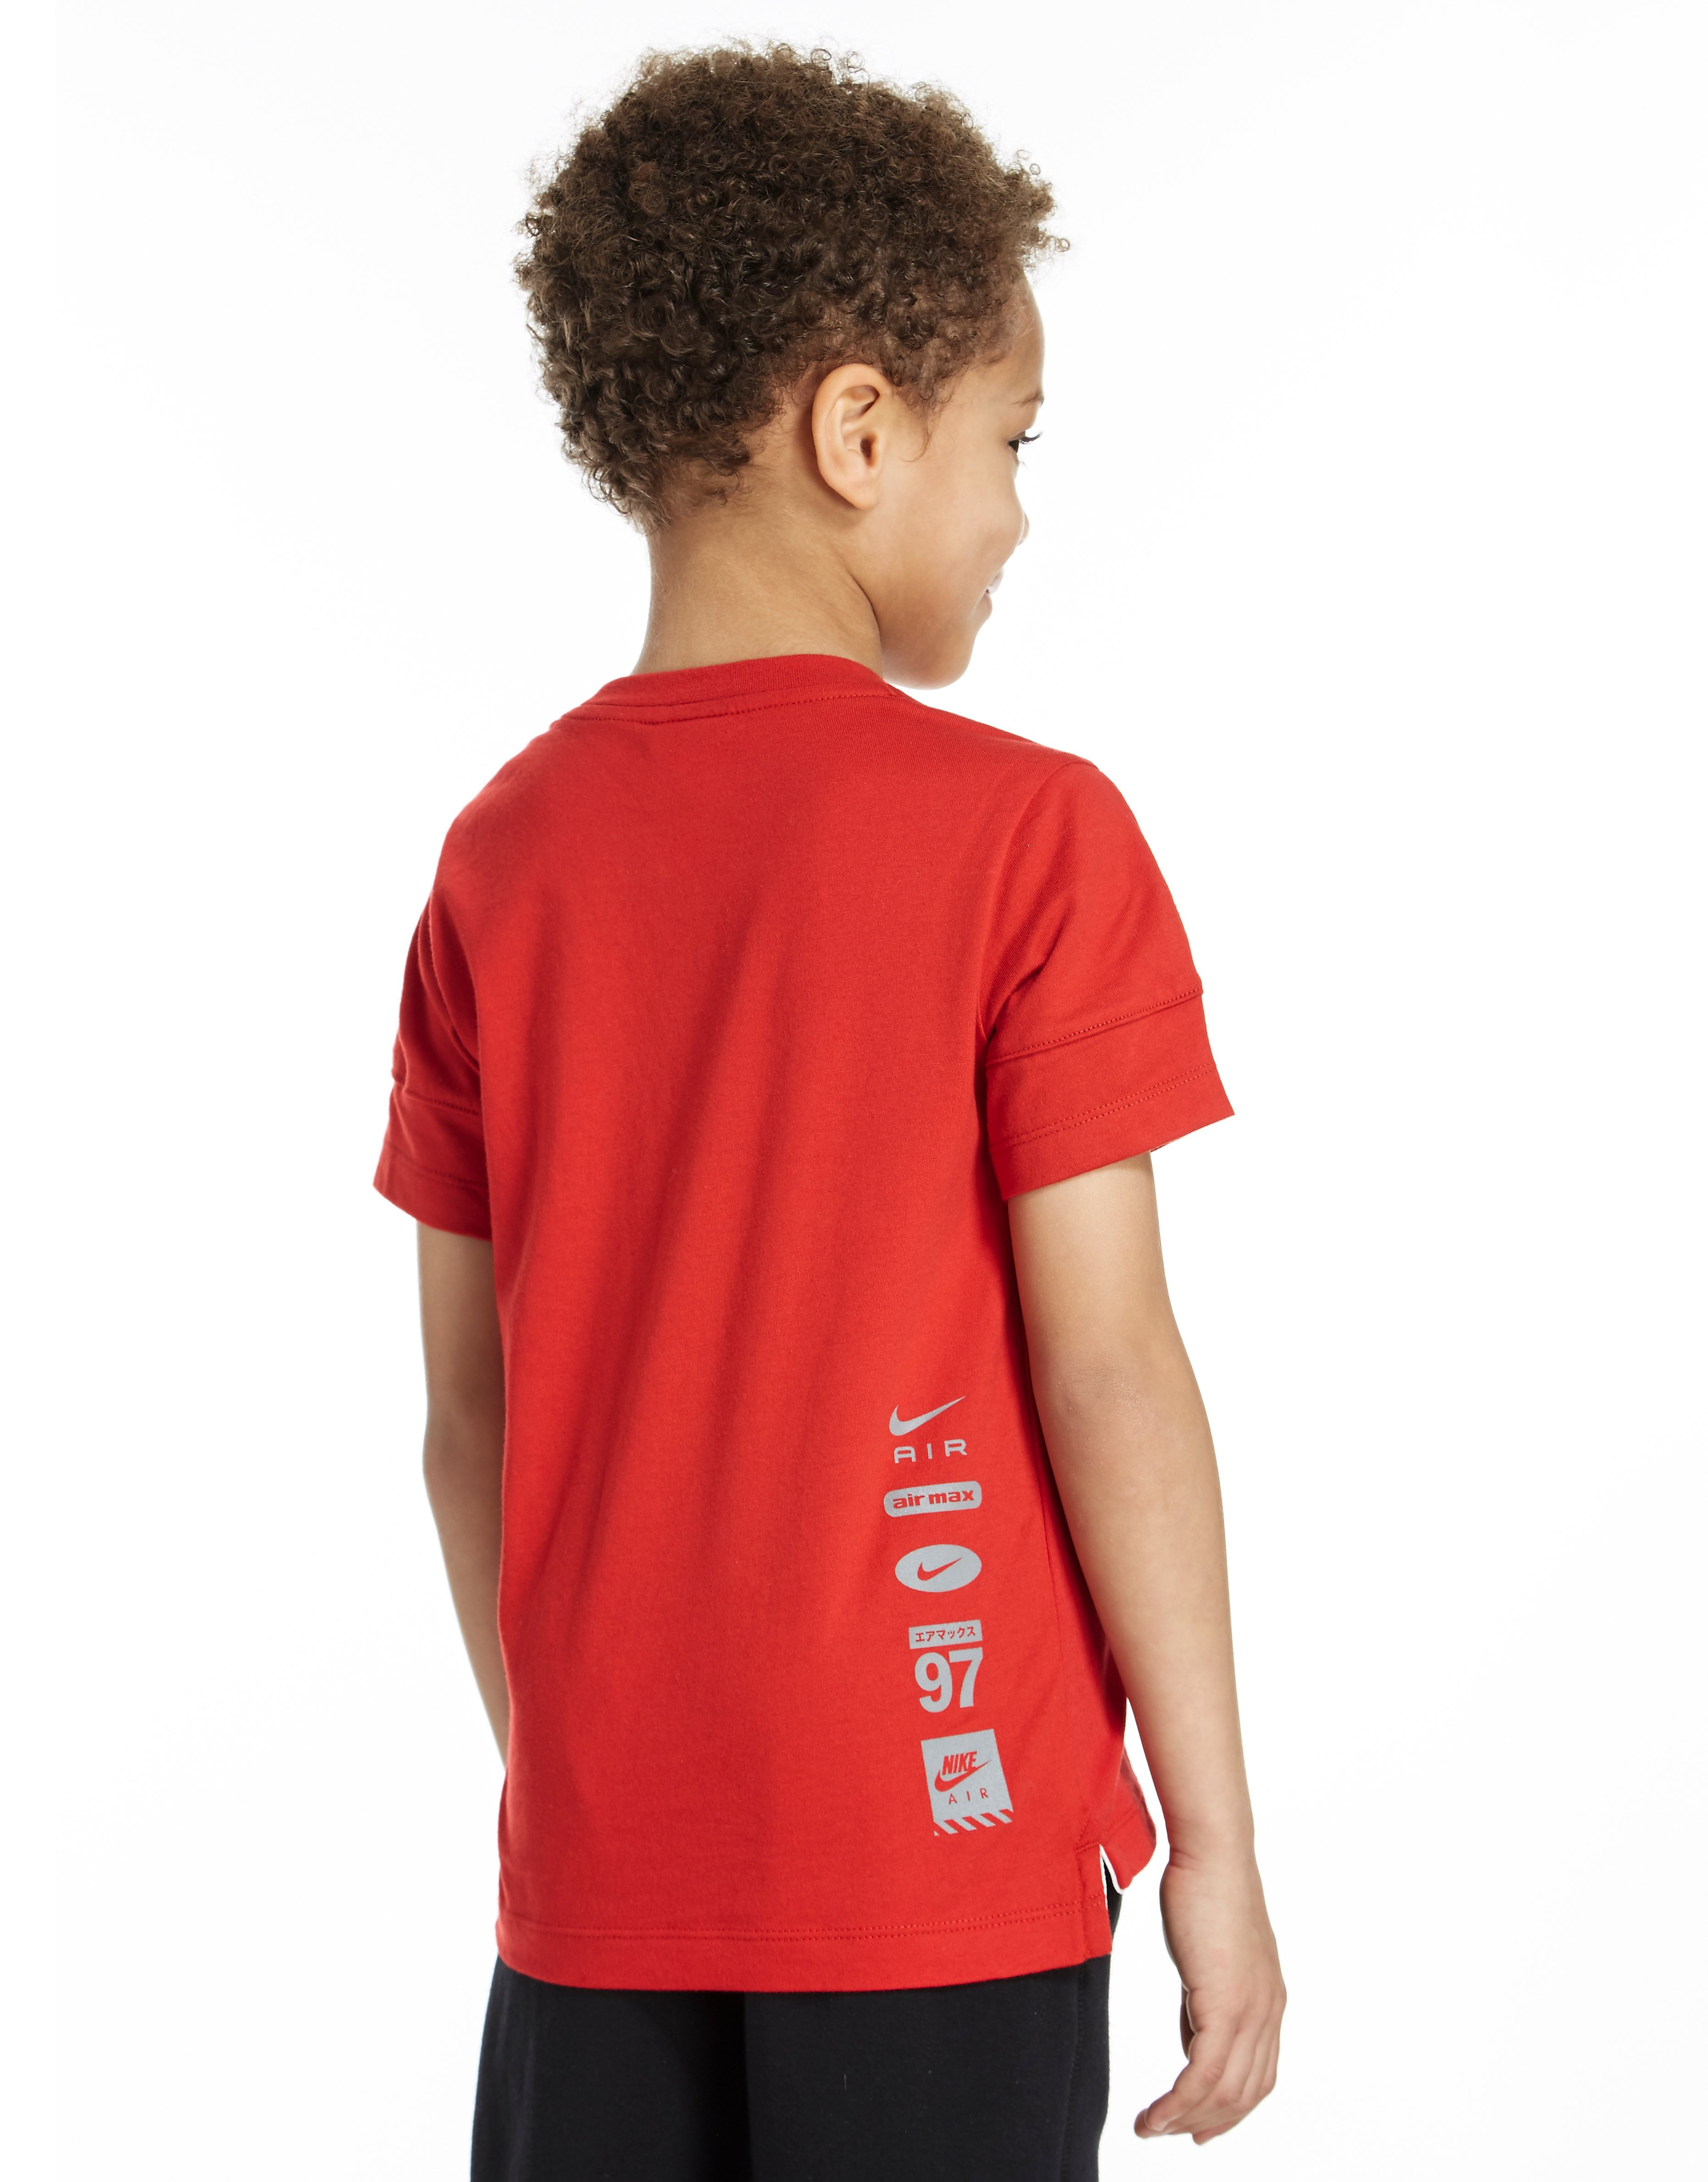 Nike Air T-Shirt Children